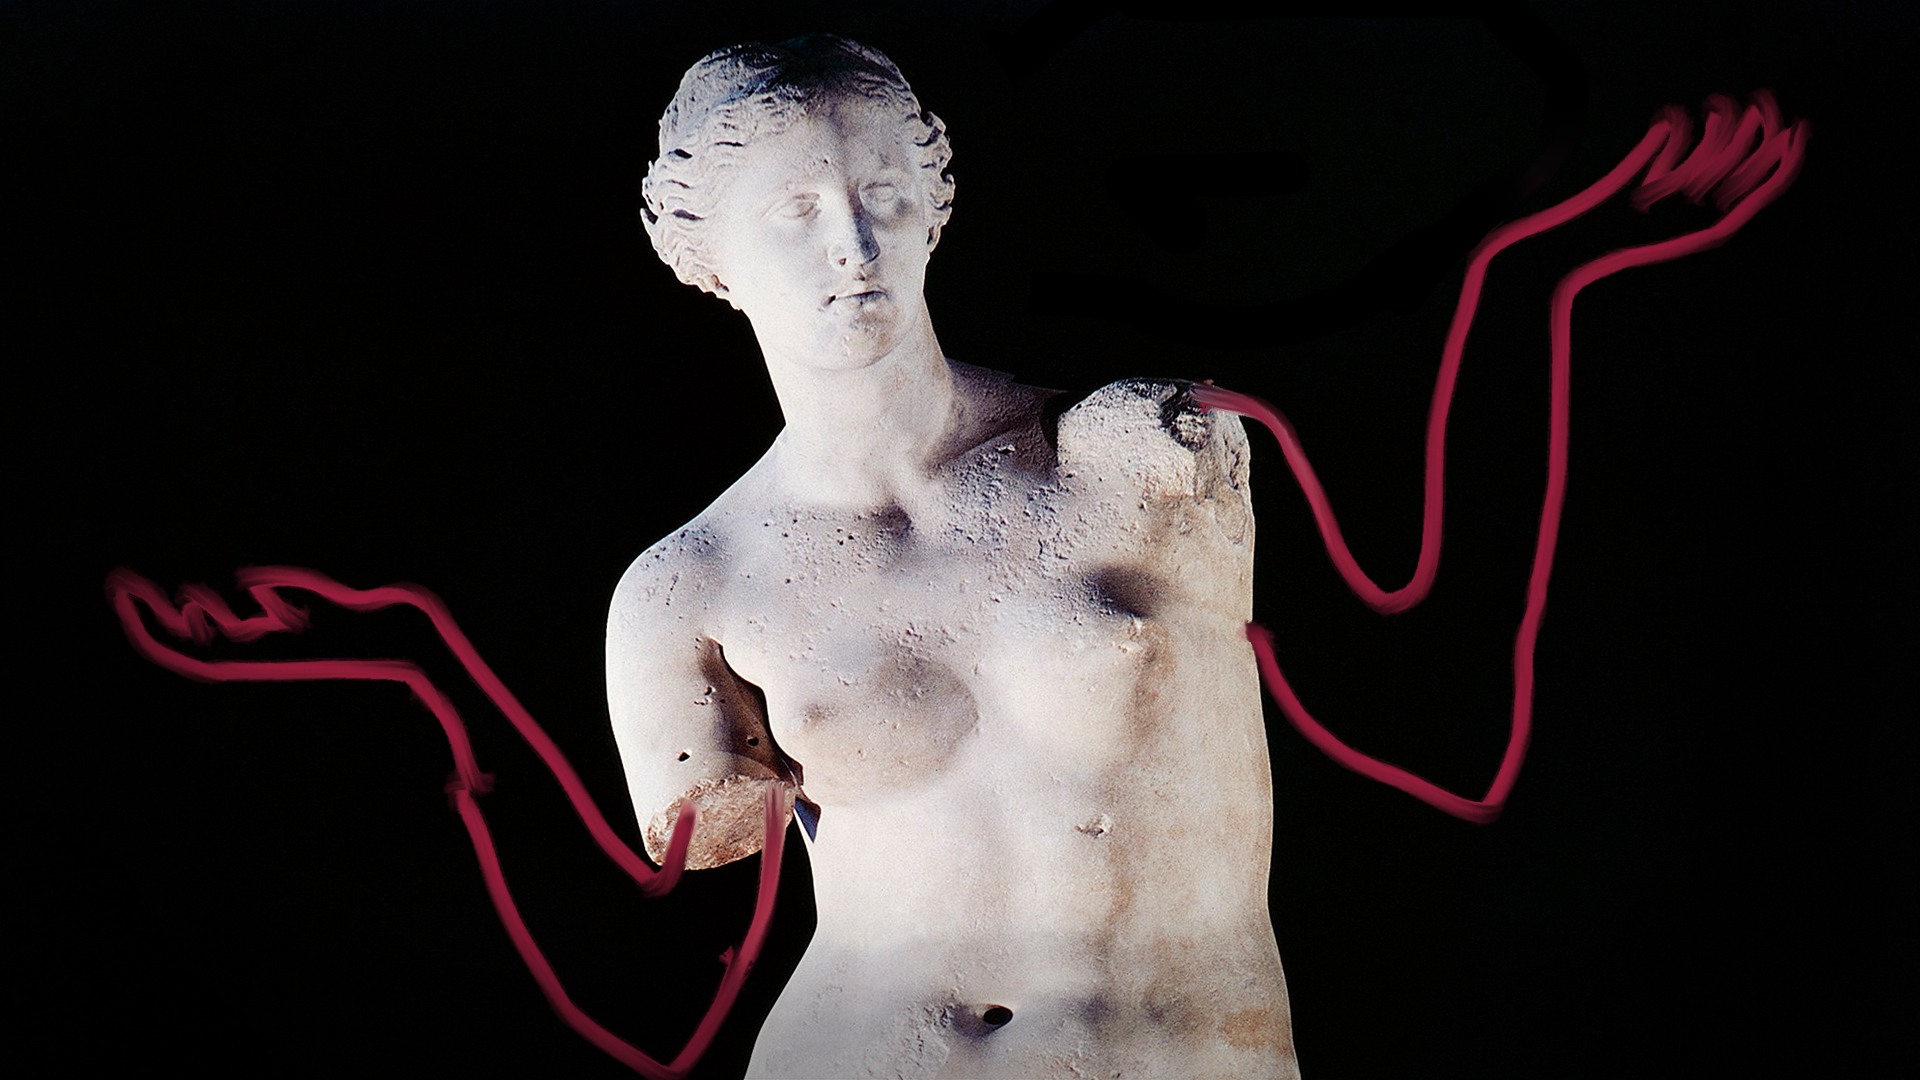 The Venus de Milo is famous. Why?